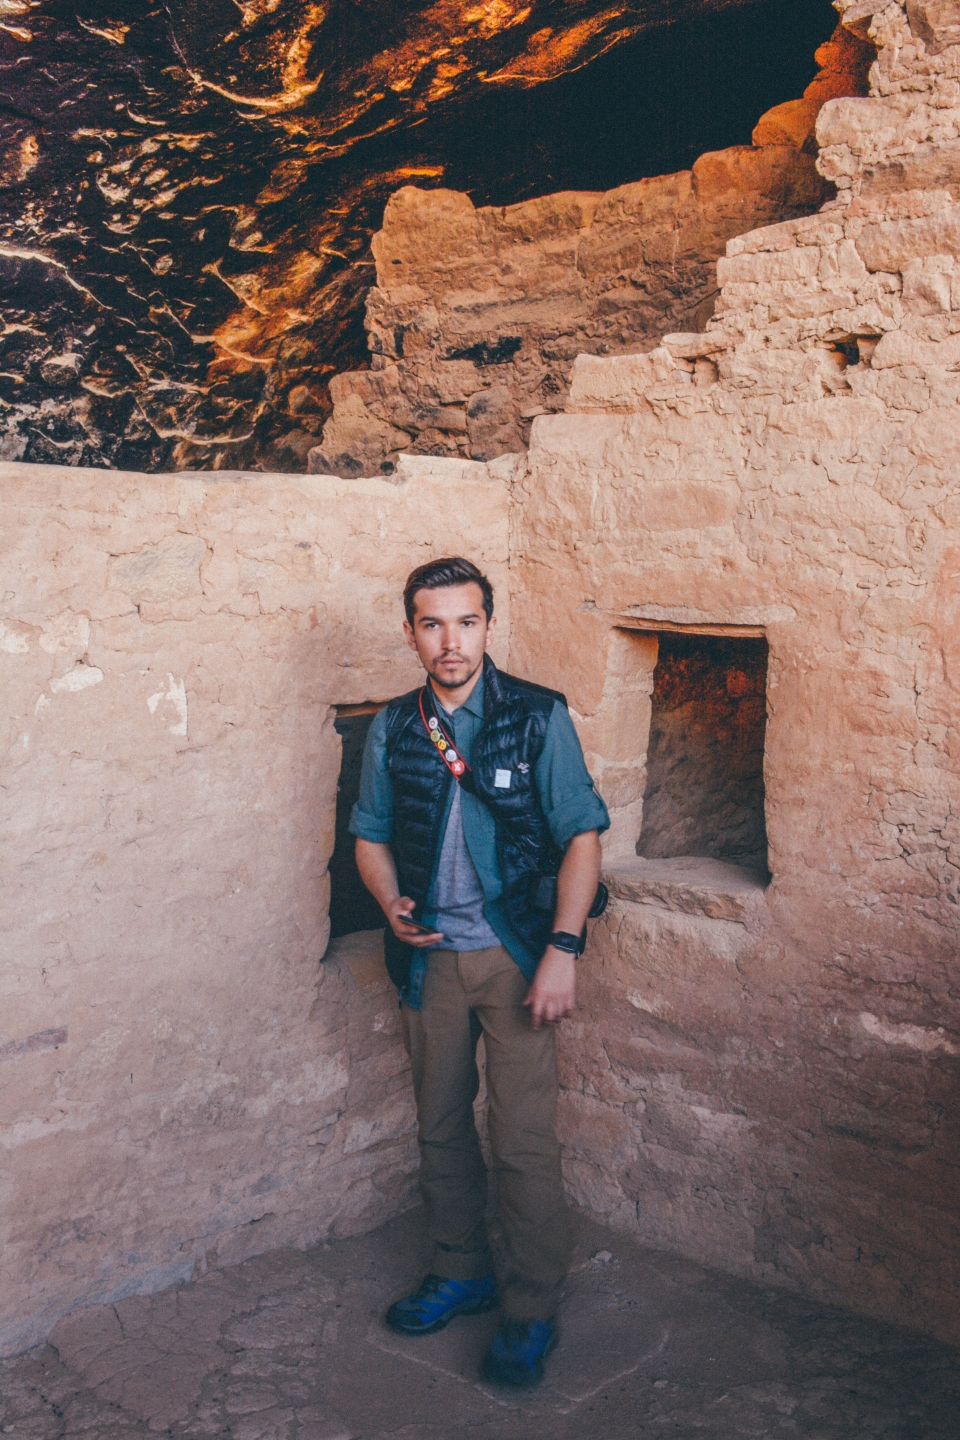 Javier standing in the architectural ruins at Mesa Verde National Park